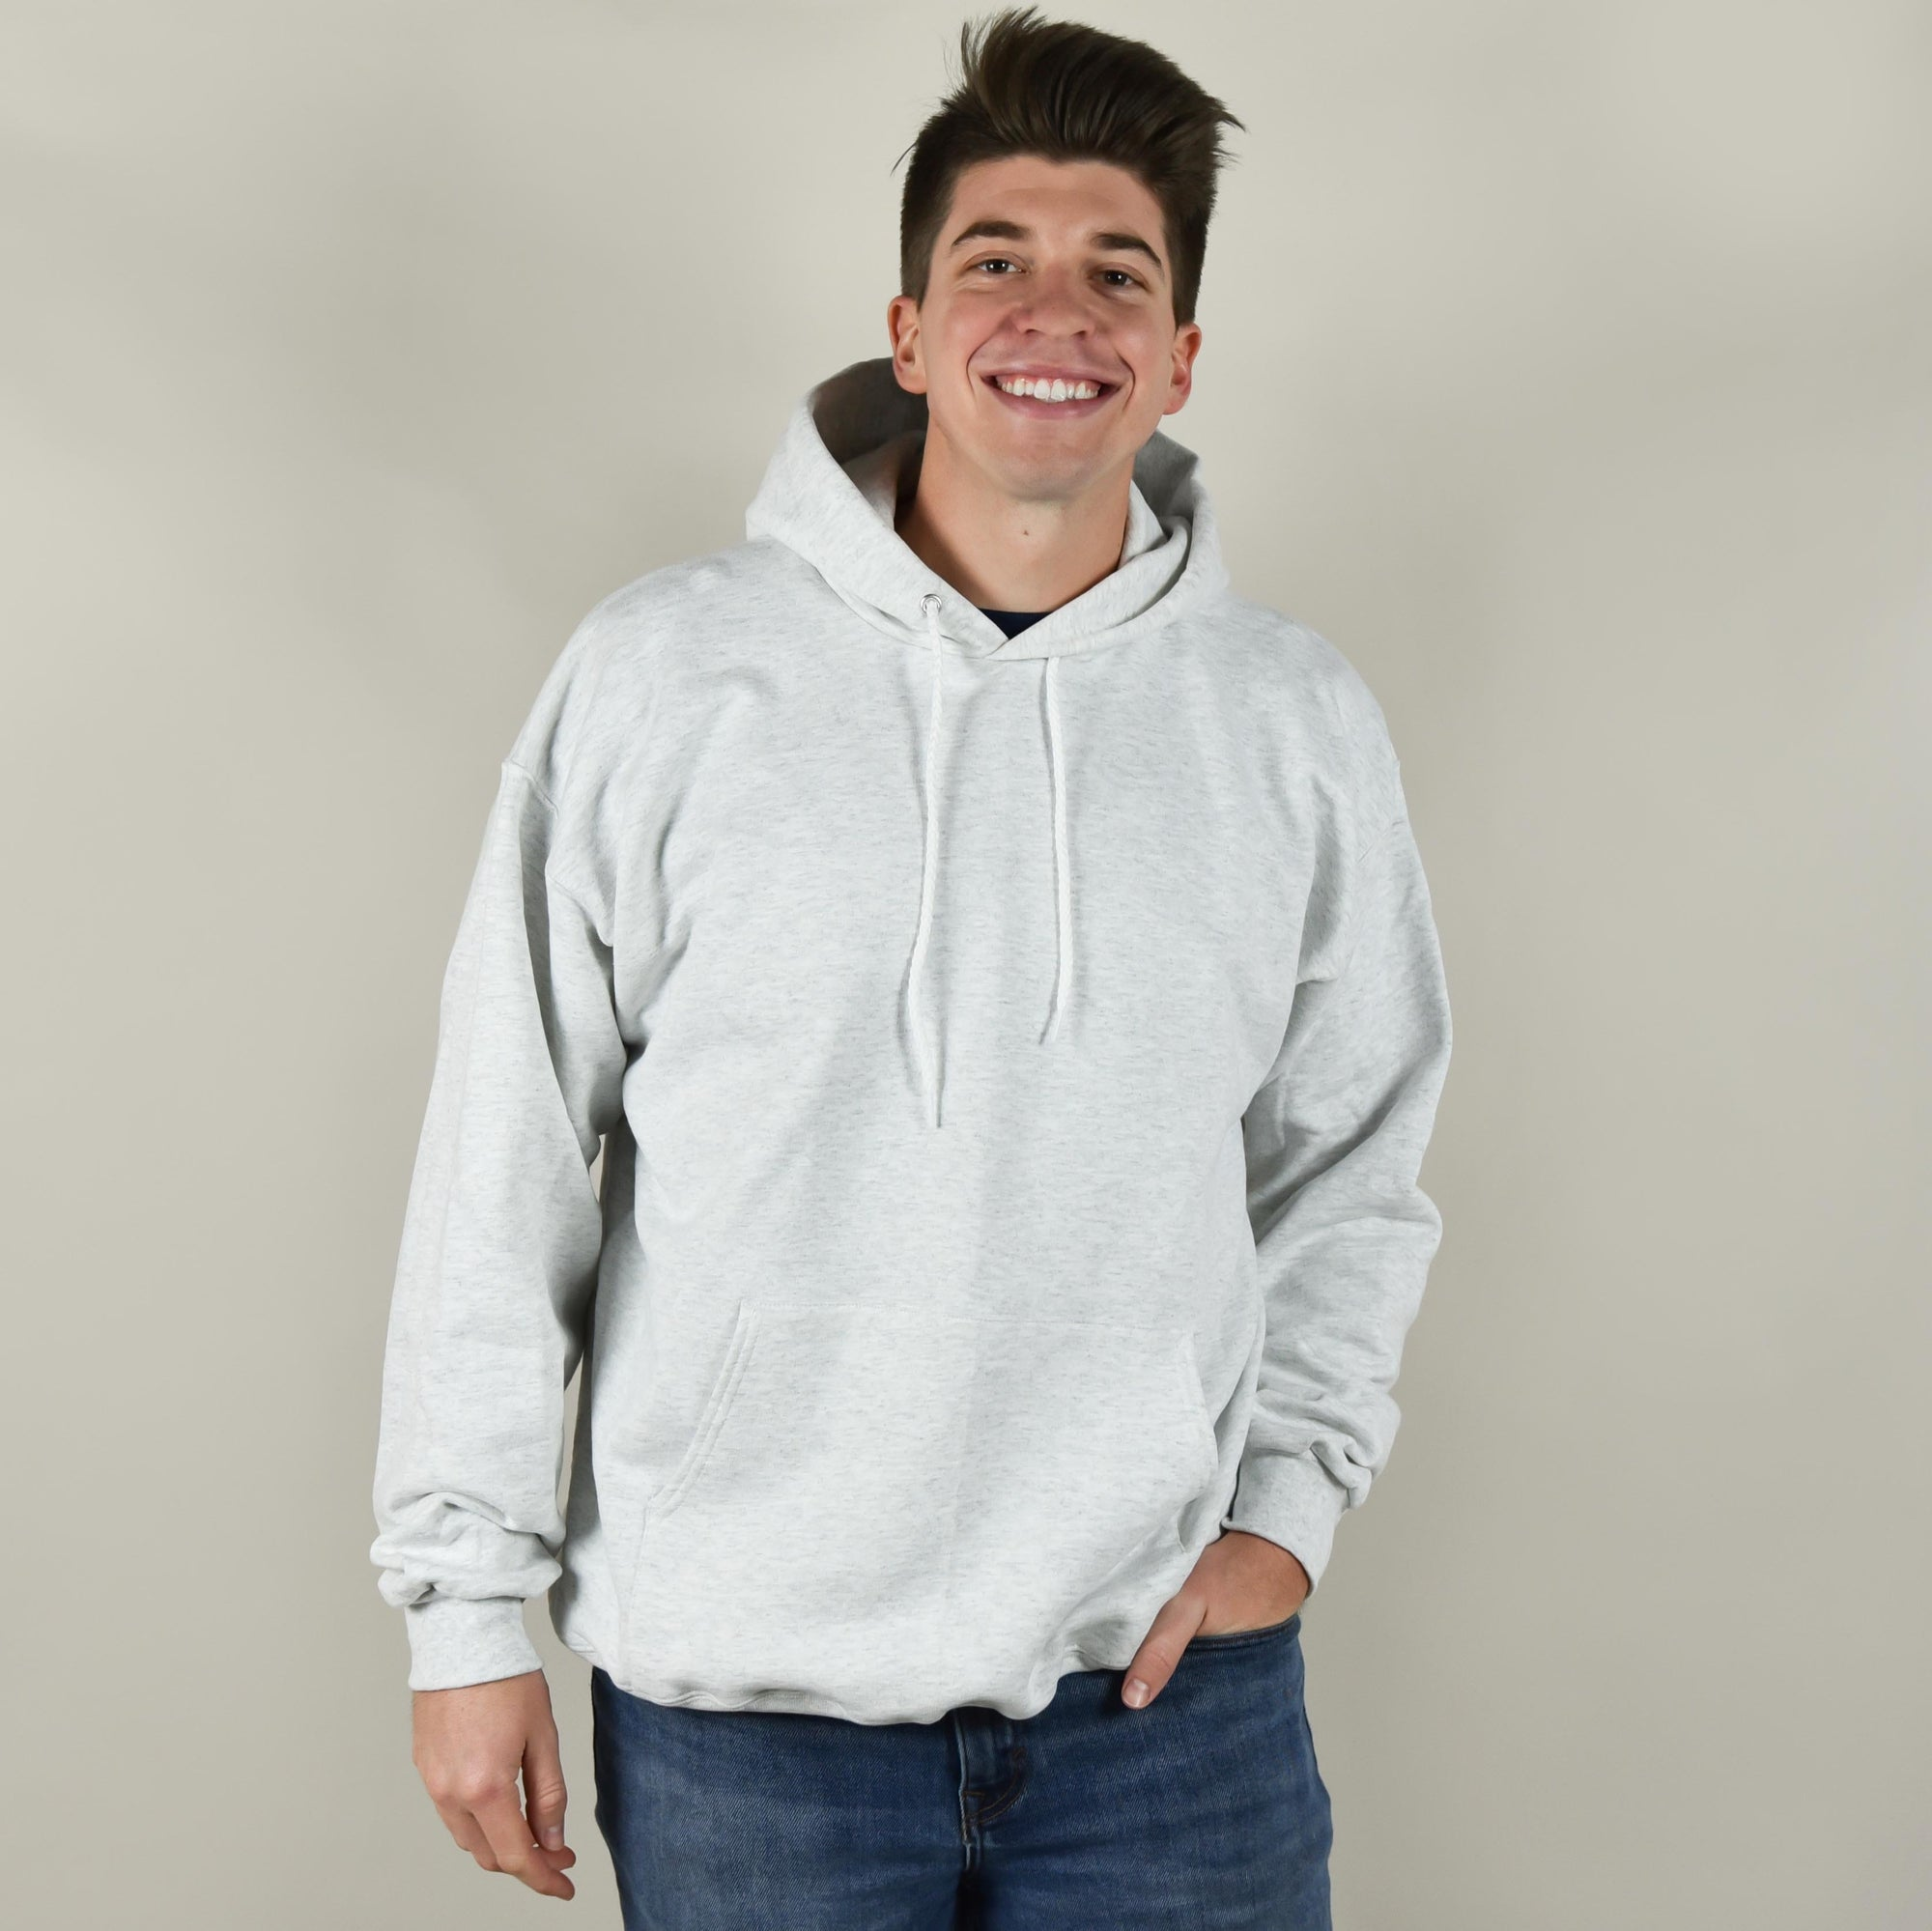 Model wearing Hanes F170 Hooded Sweatshirt